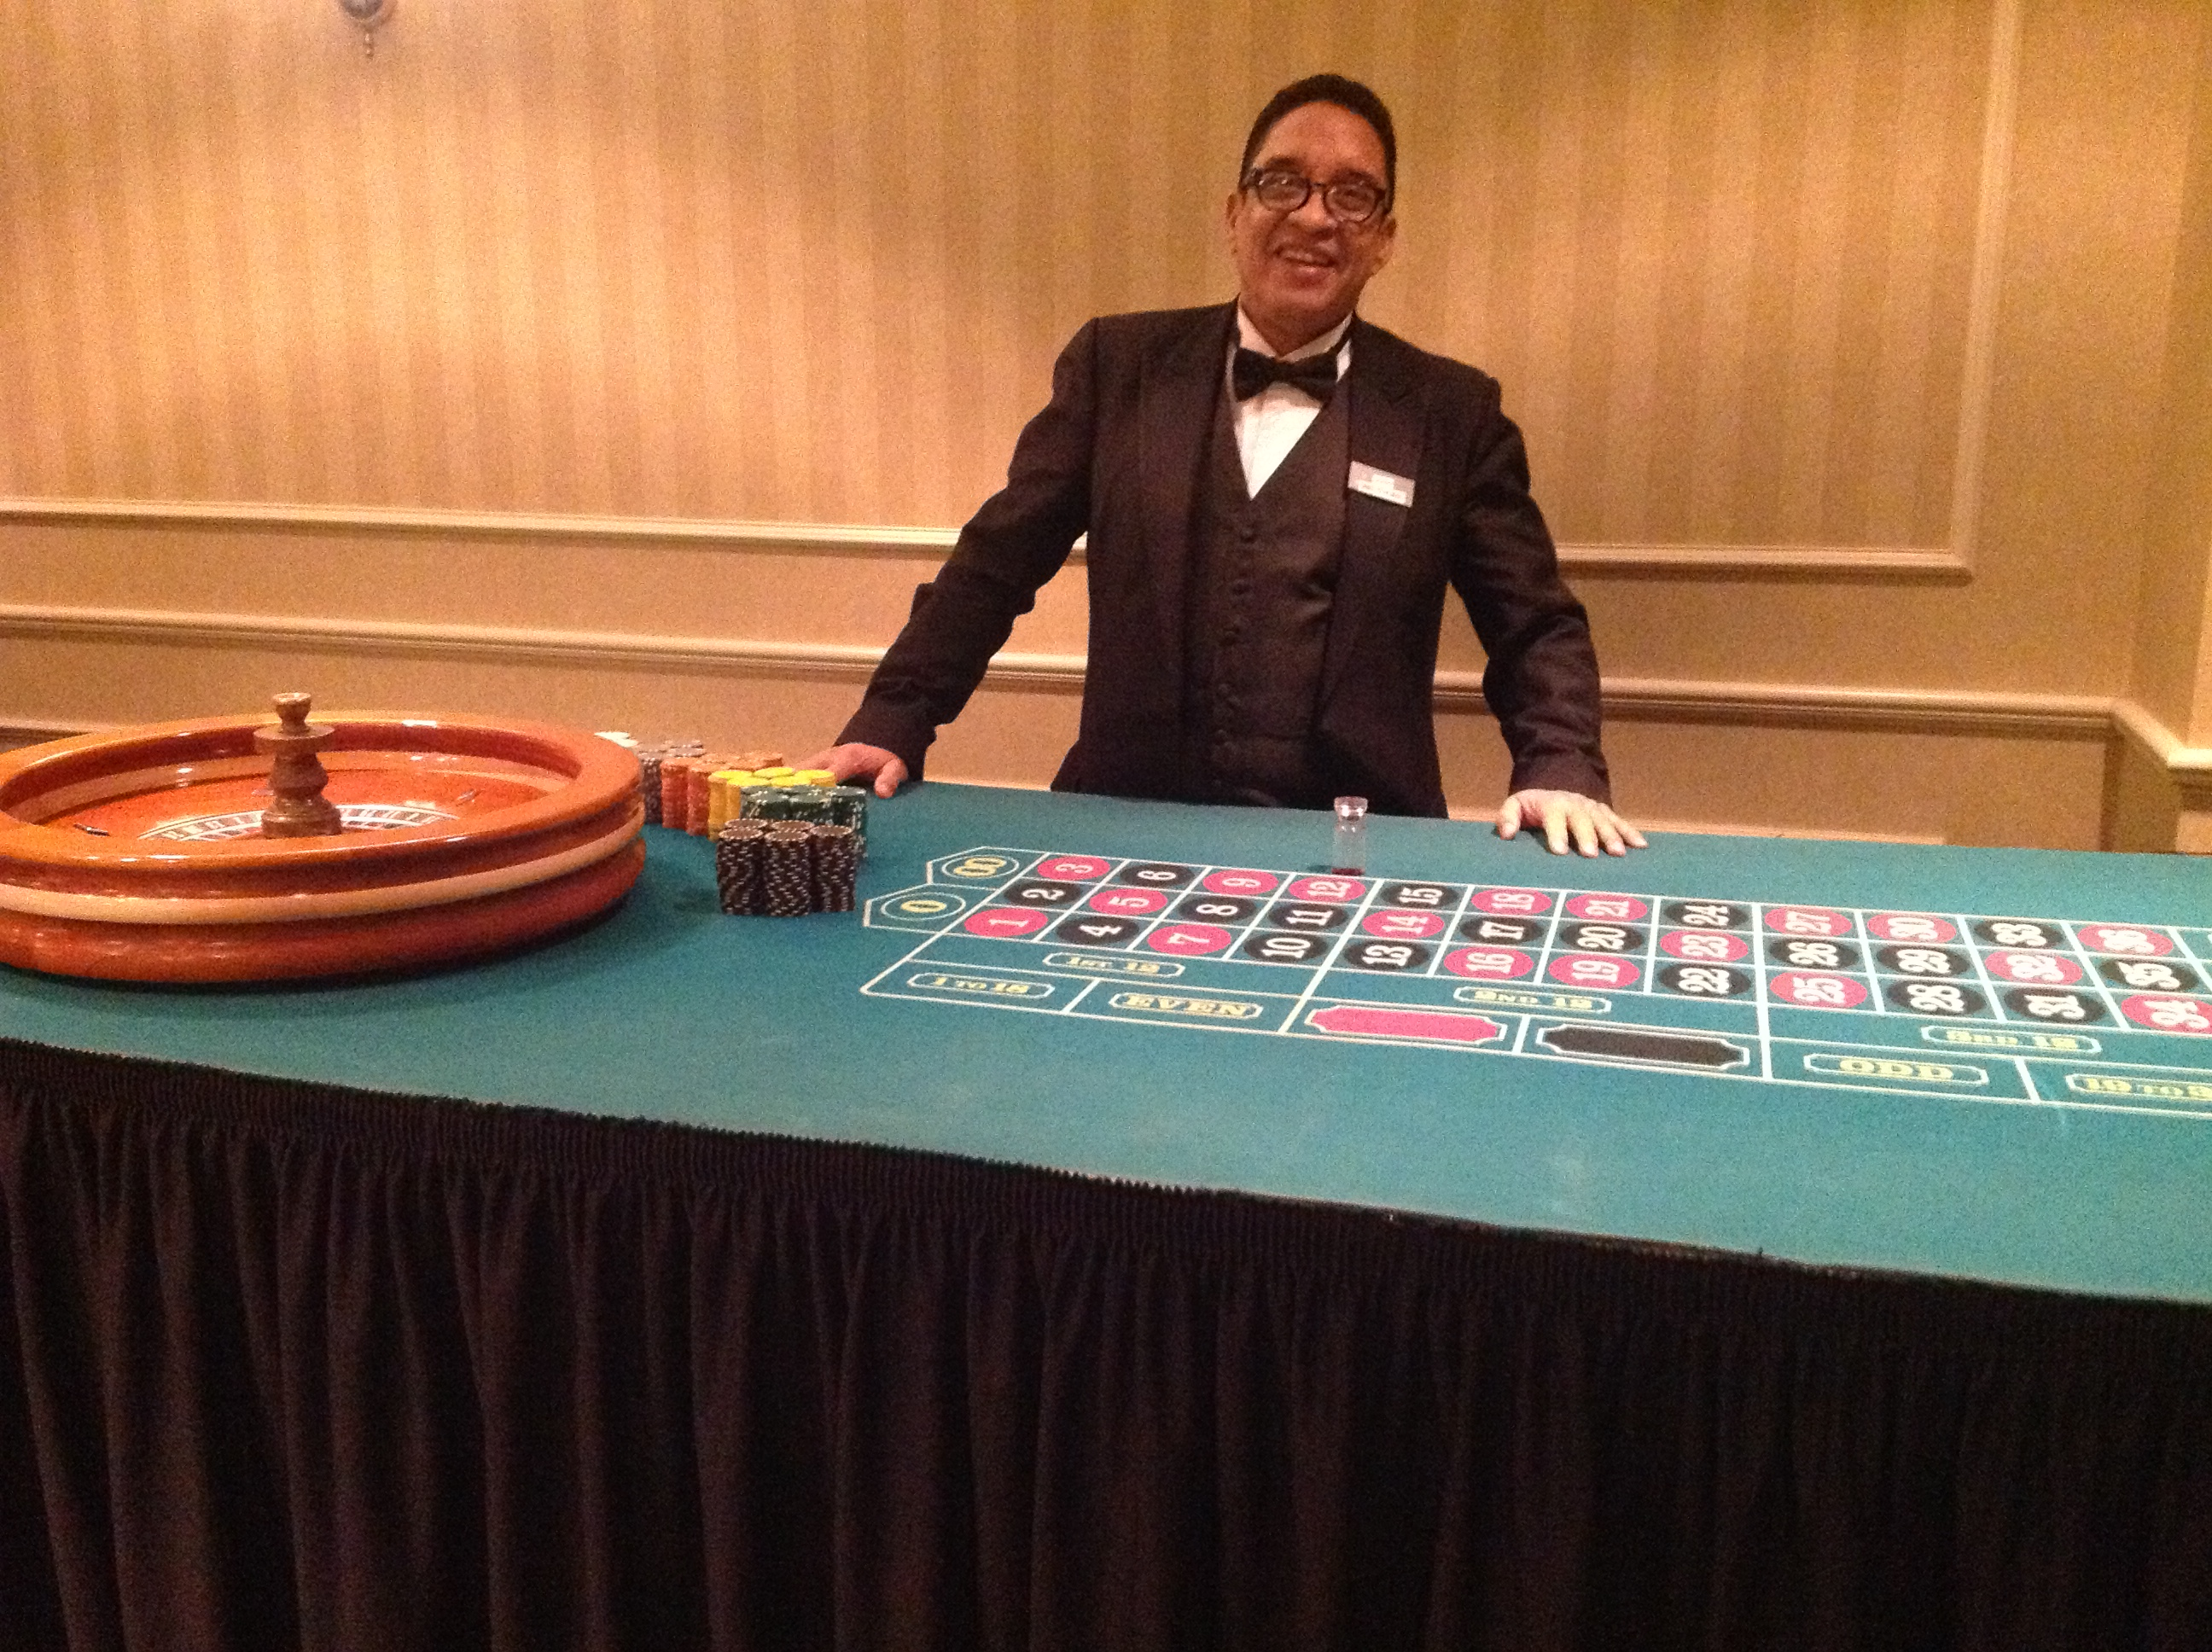 casino games at wedding